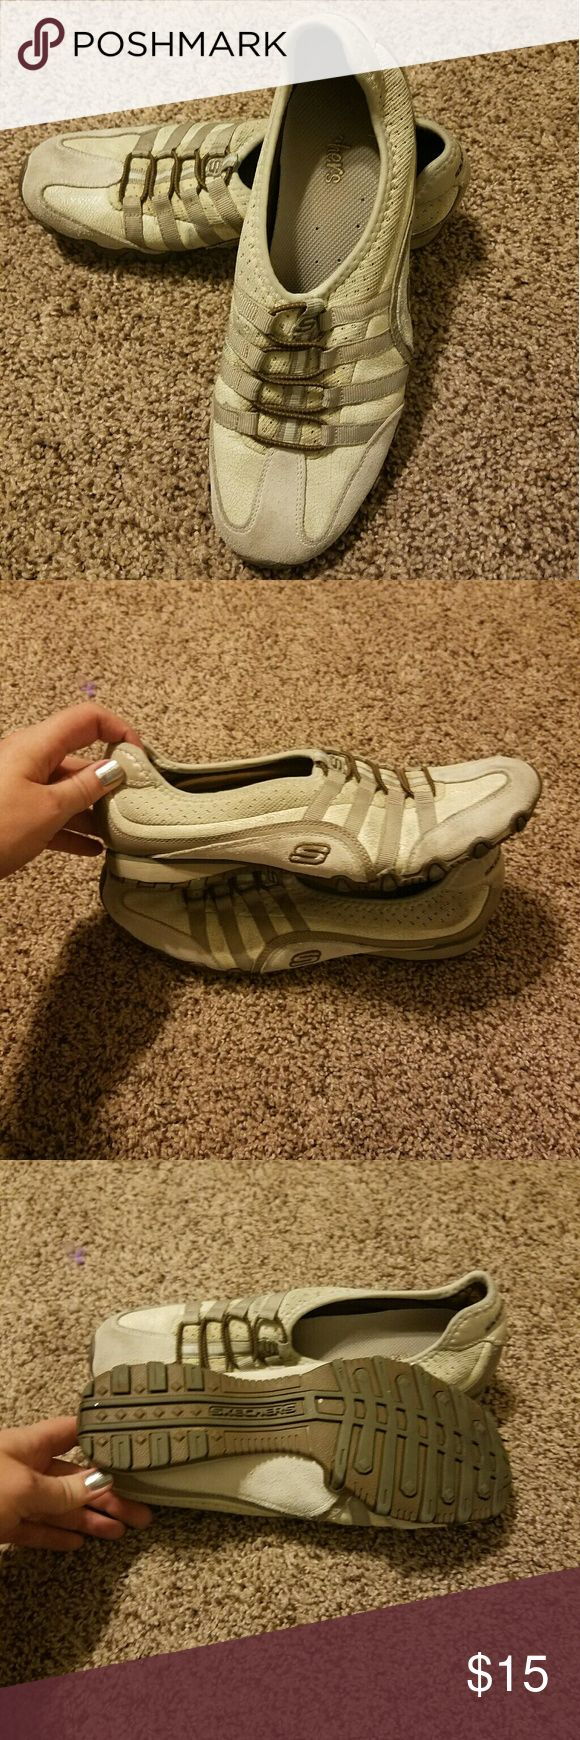 Skechers Slip On Shoes Size 8.5 Light tan and brown. Great condition with lots of life but they have been worn many times. Skechers Shoes Athletic Shoes